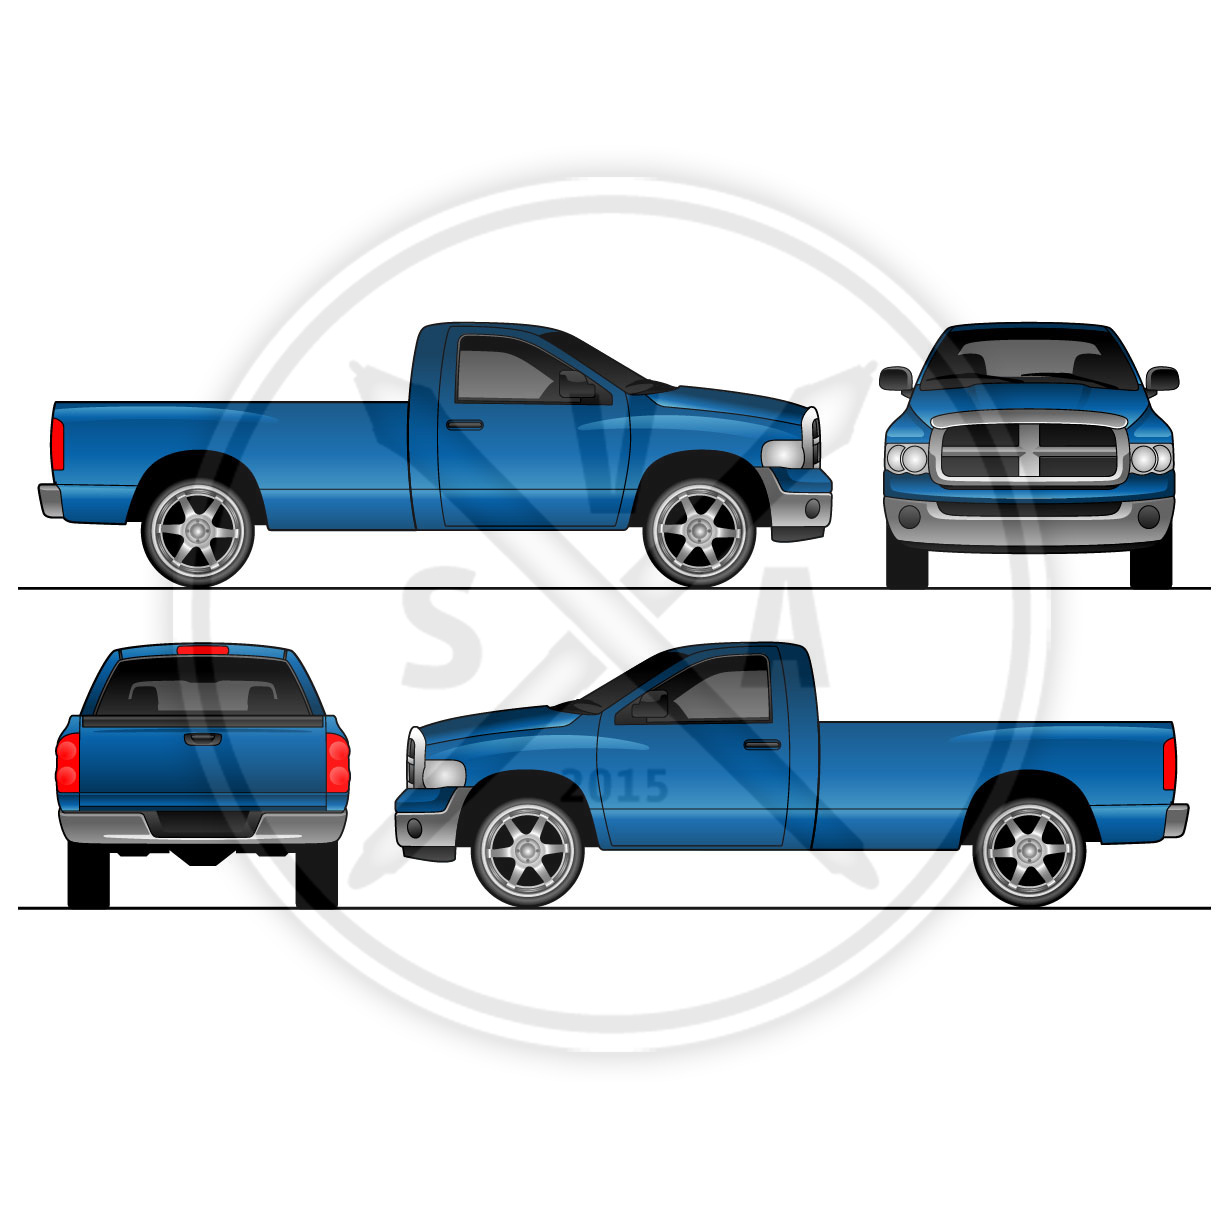 car wrap templates free download - dodge ram regular cab design template stock vector art